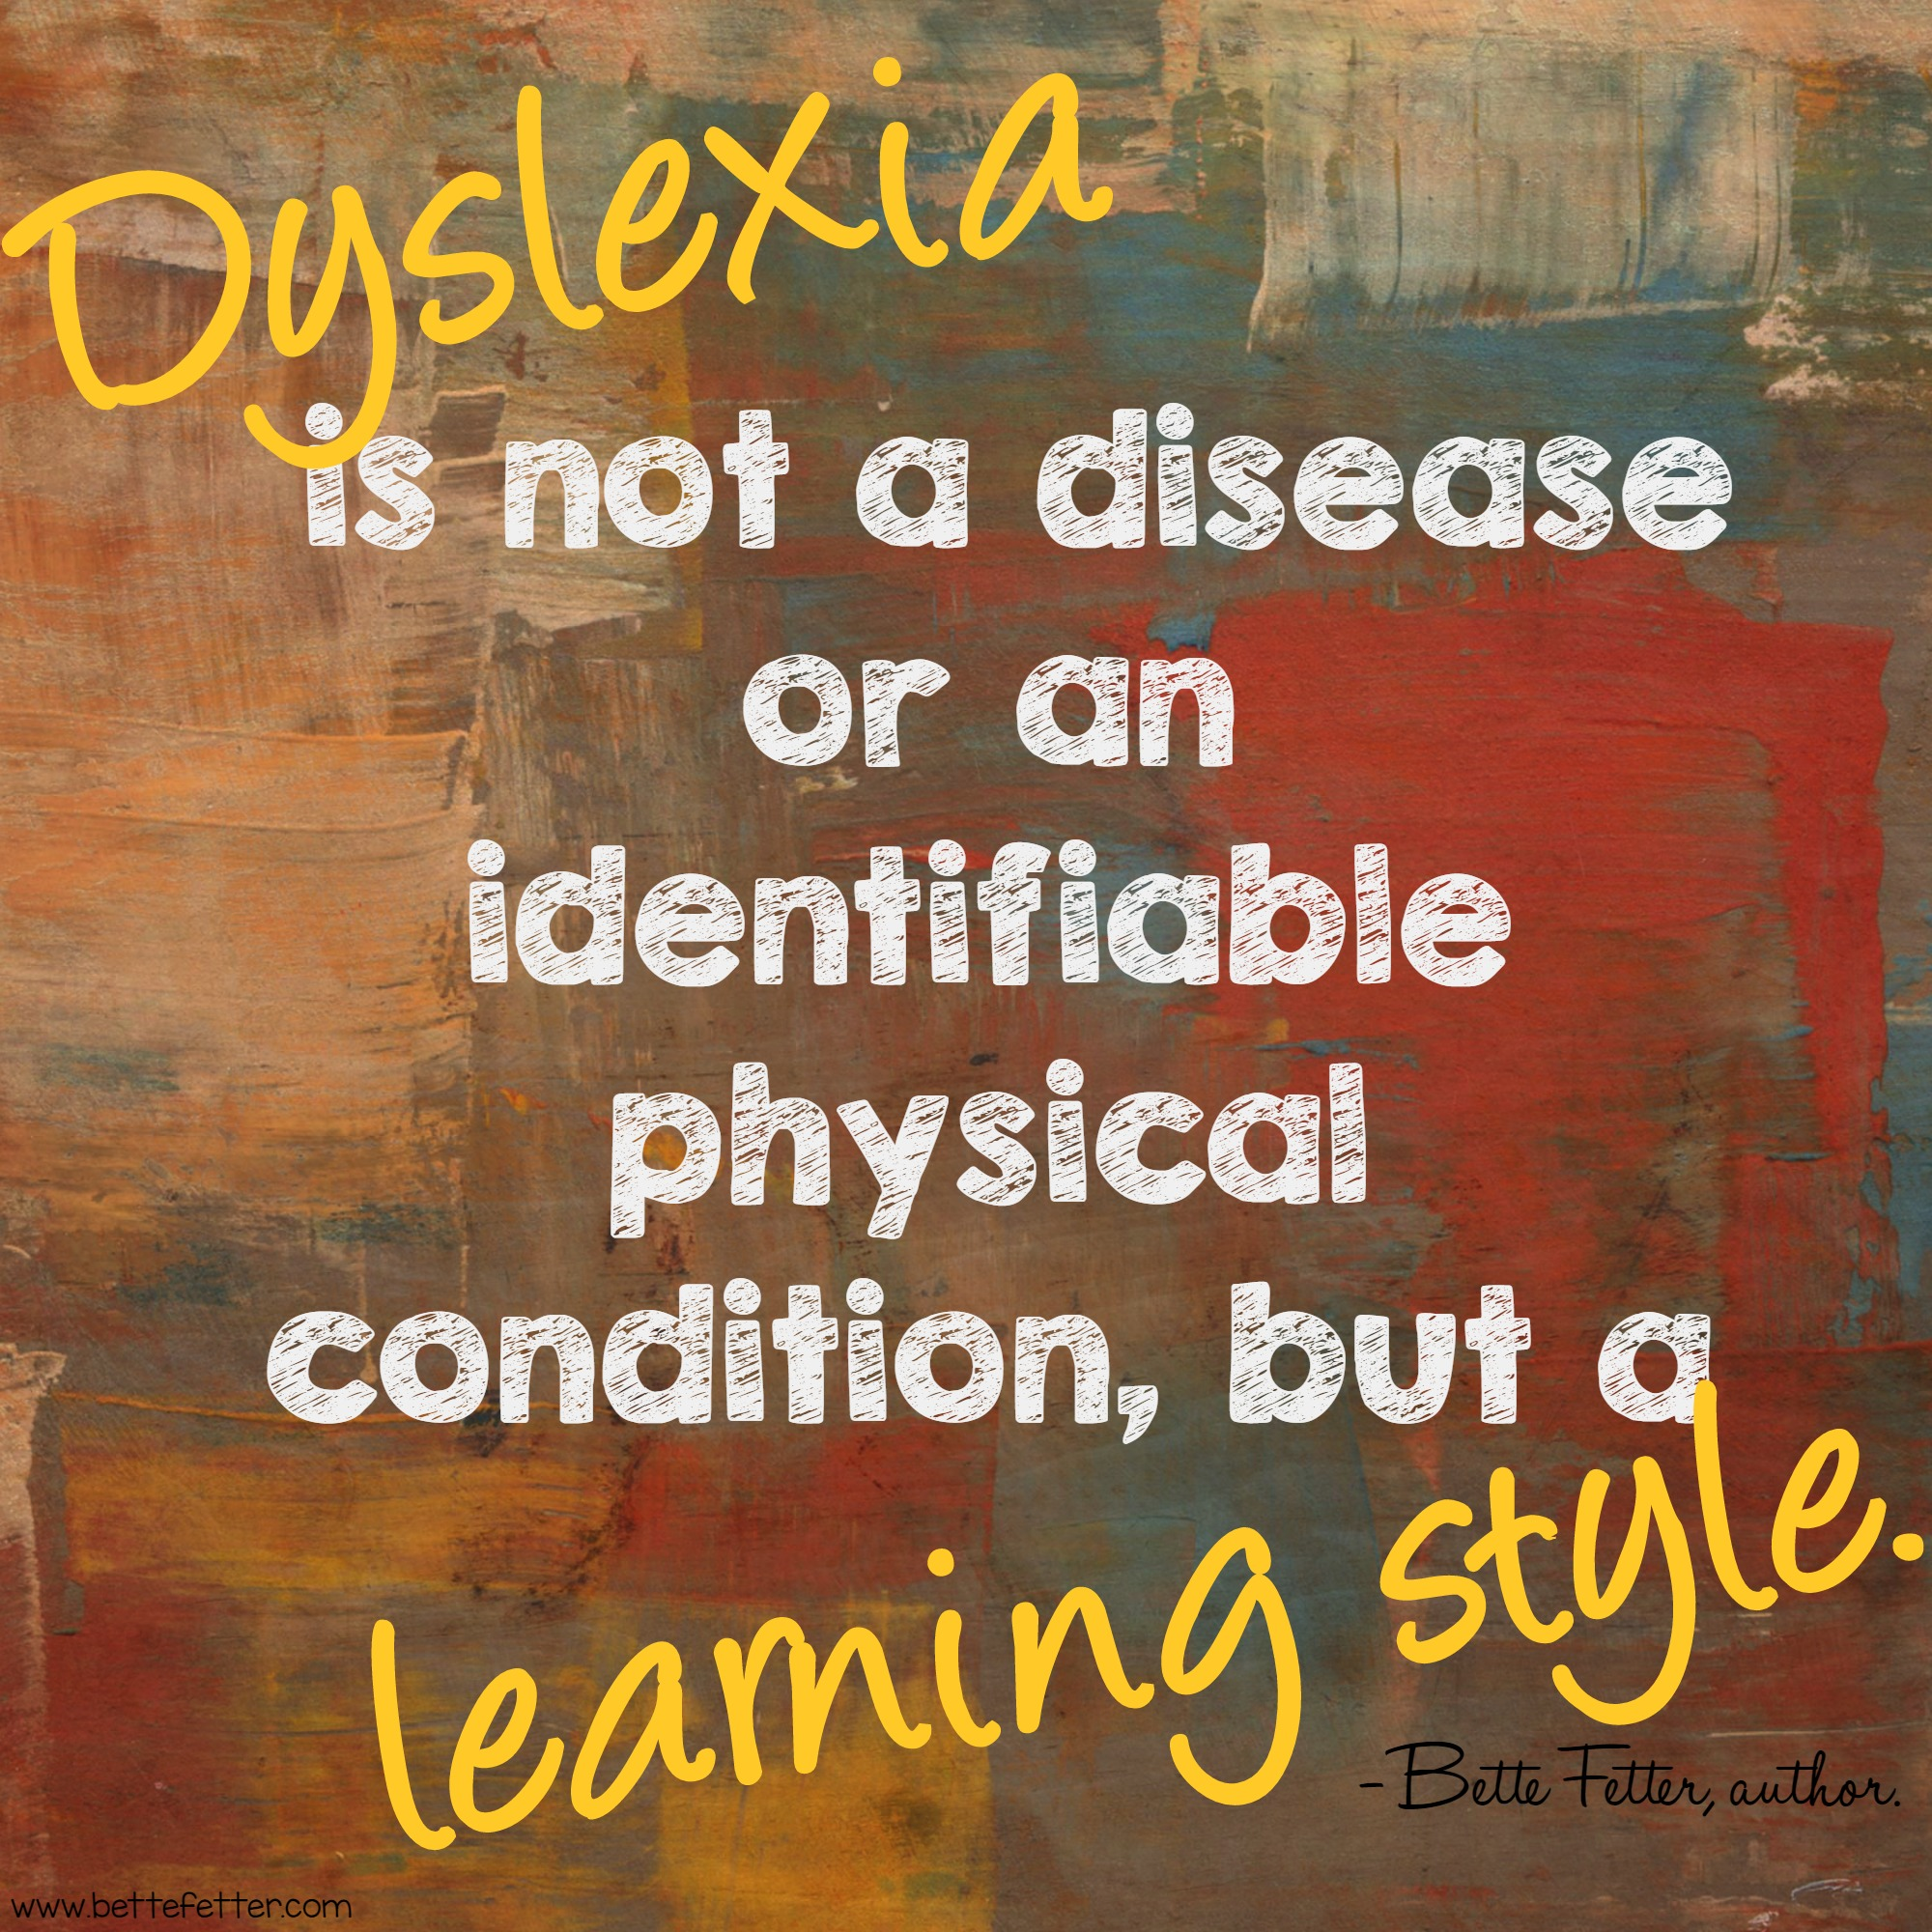 Inspirational Quotes About Dyslexia. QuotesGram